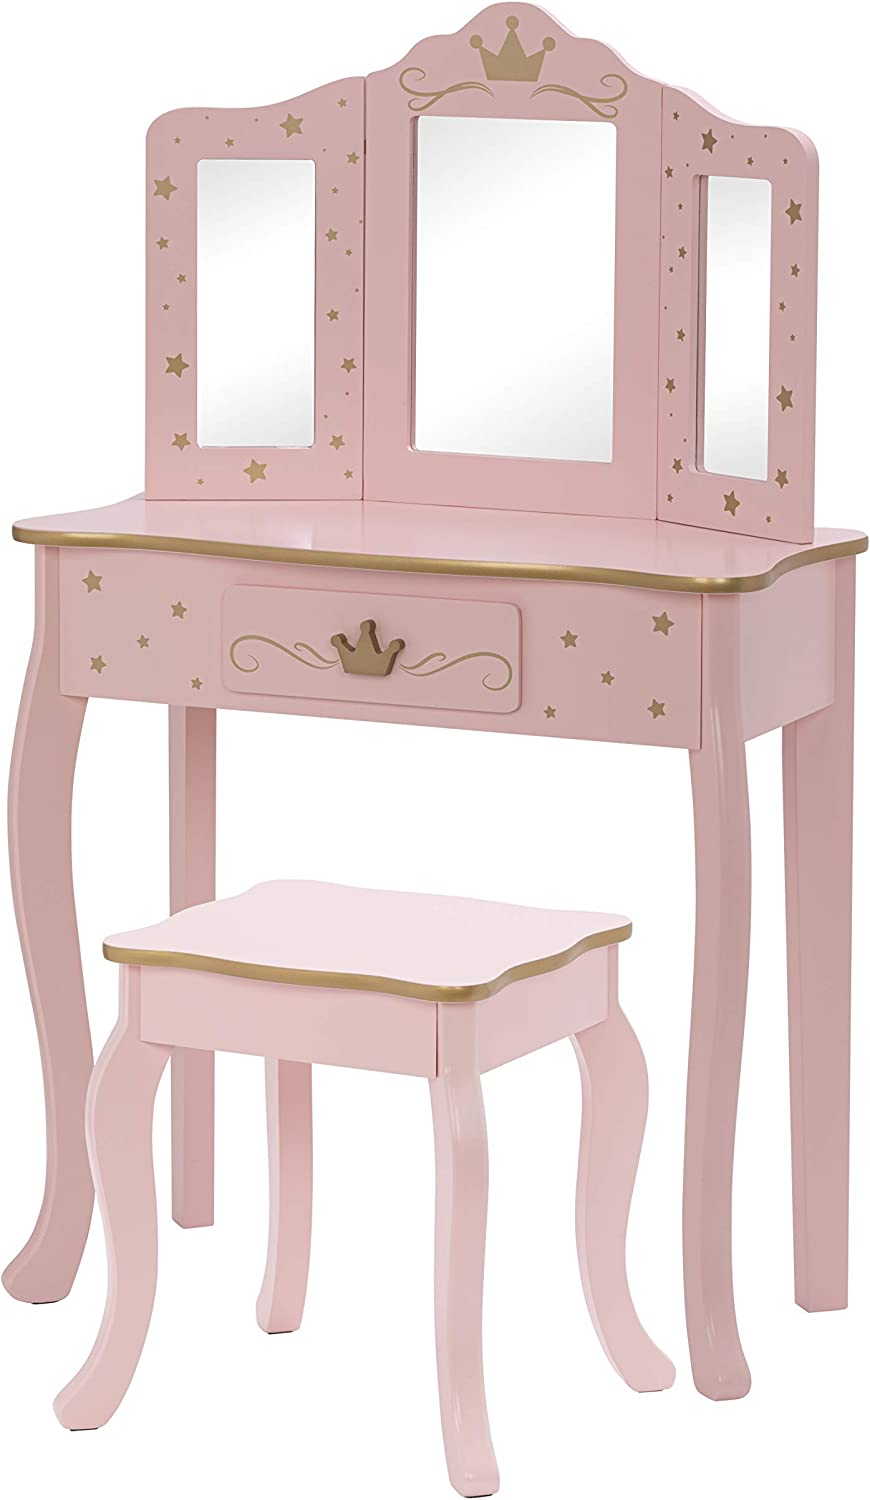 UTEX Pretend Play Kids Vanity Table and Chair Vanity Set with Mirror Makeup Dressing Table with Drawer,Play Vanity Set,Pink